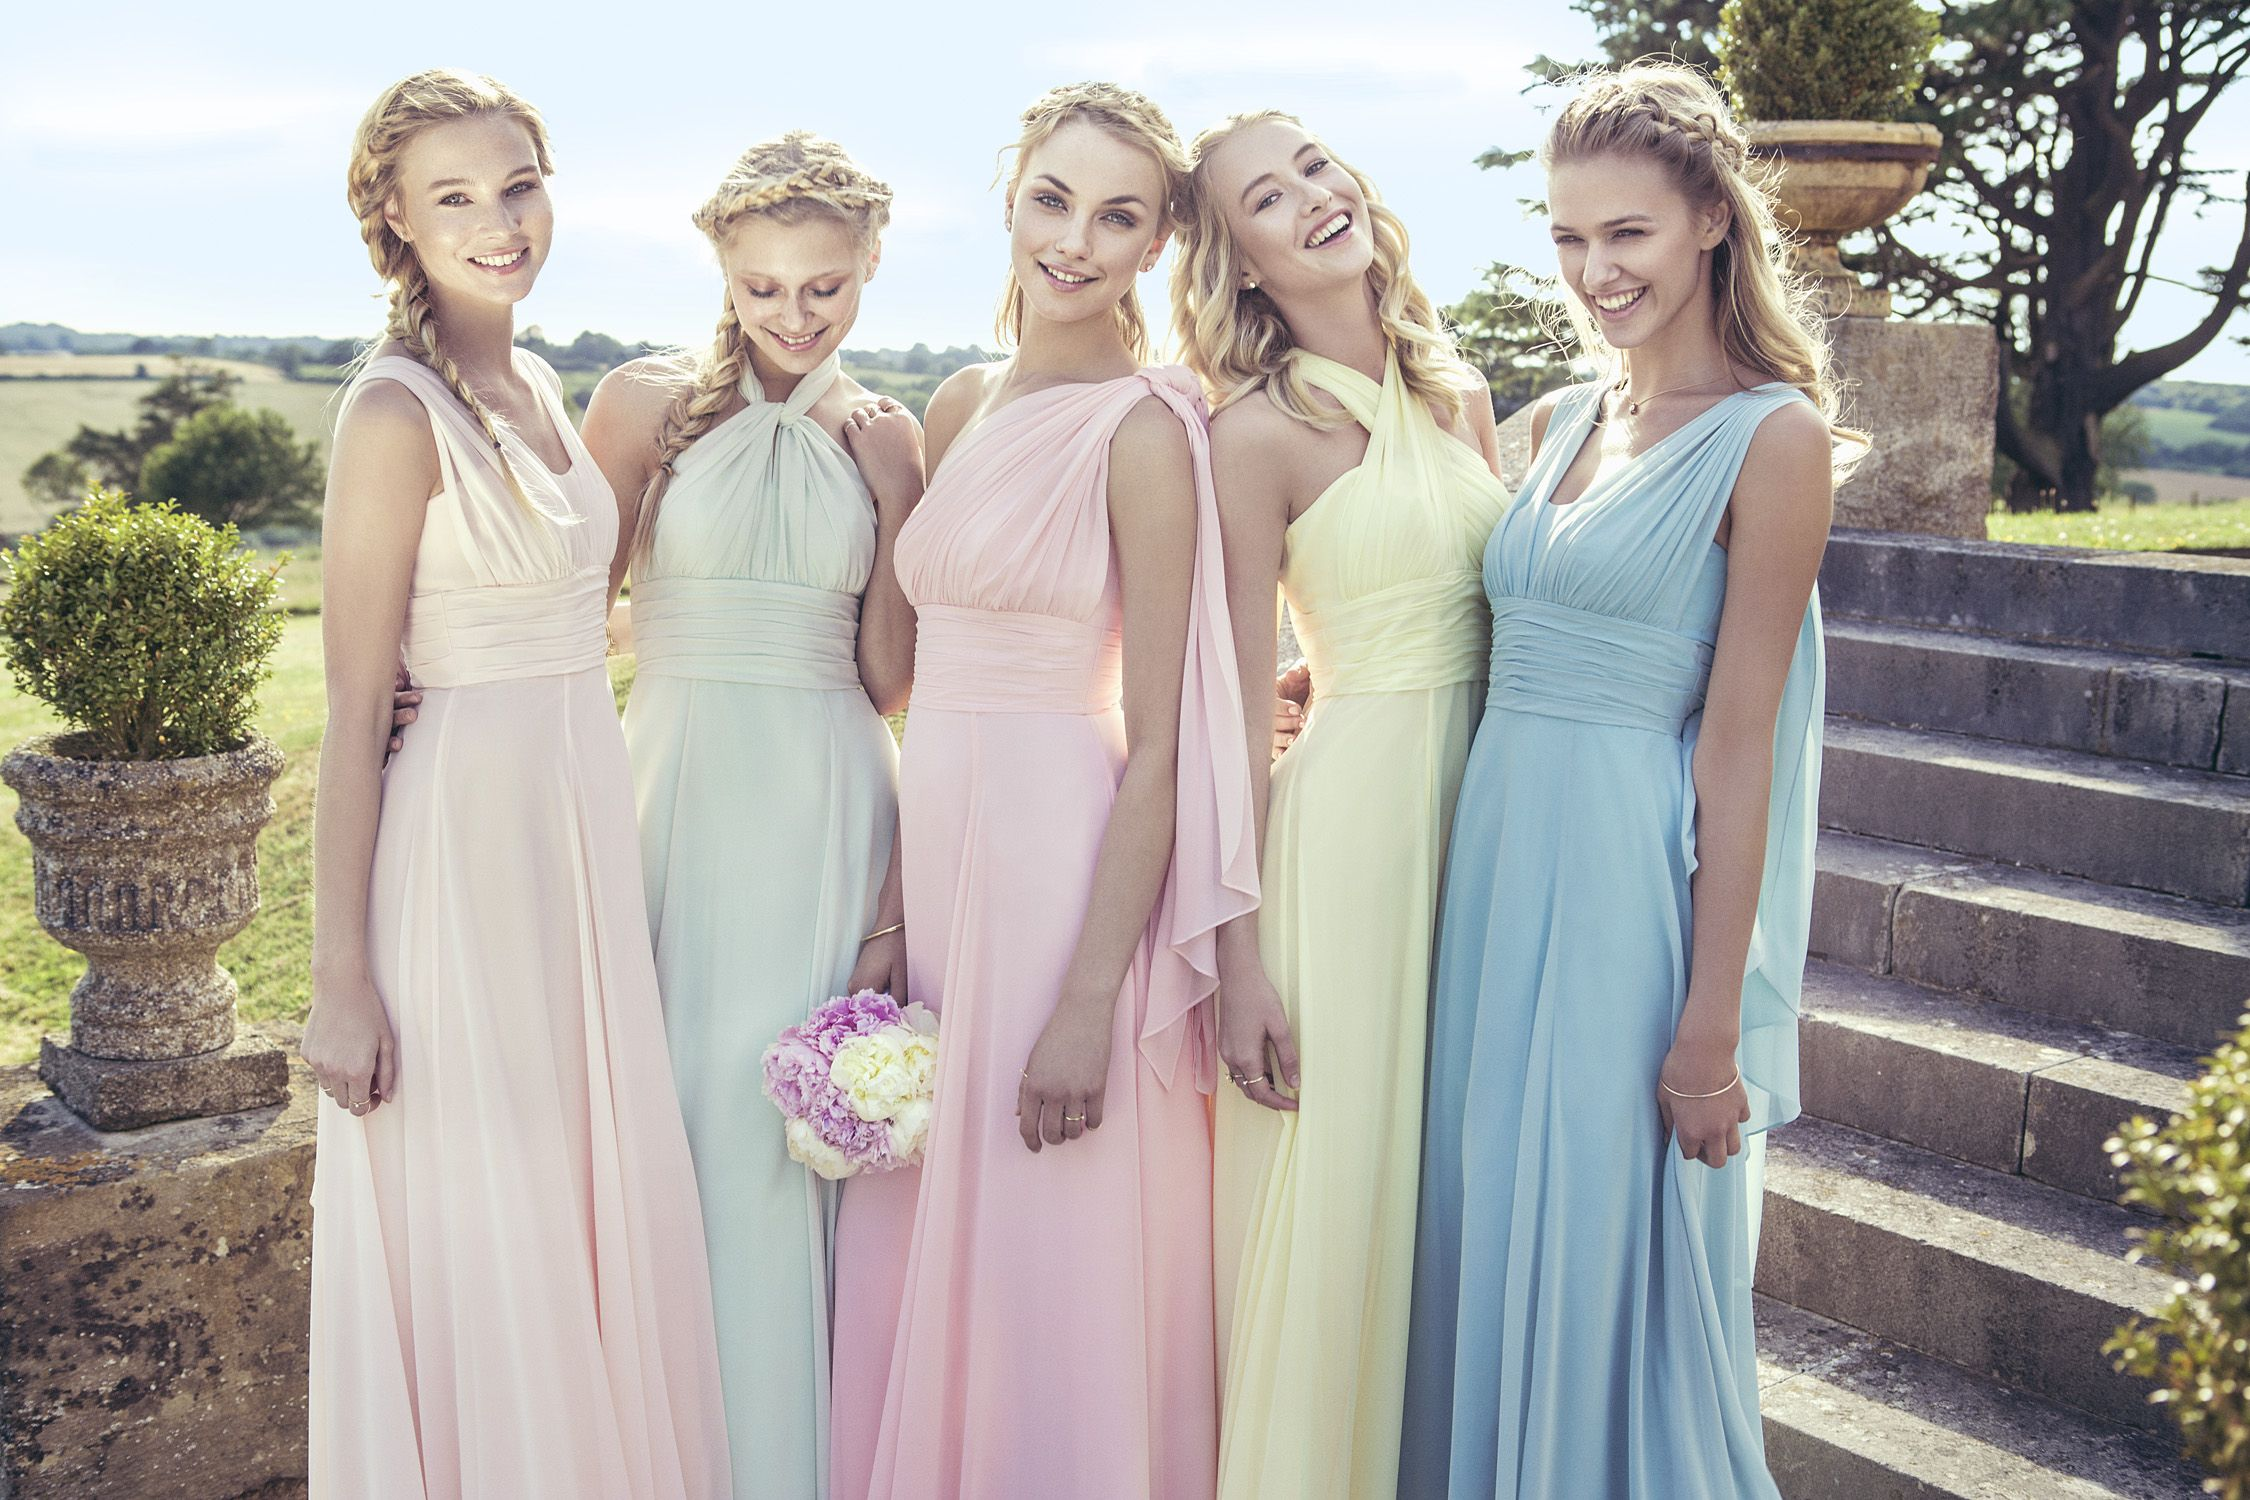 Softservepastels wedding ideas pinterest soft serve rose rainbow pastel bridesmaid dresses kelseyrose love these dresses ombrellifo Choice Image